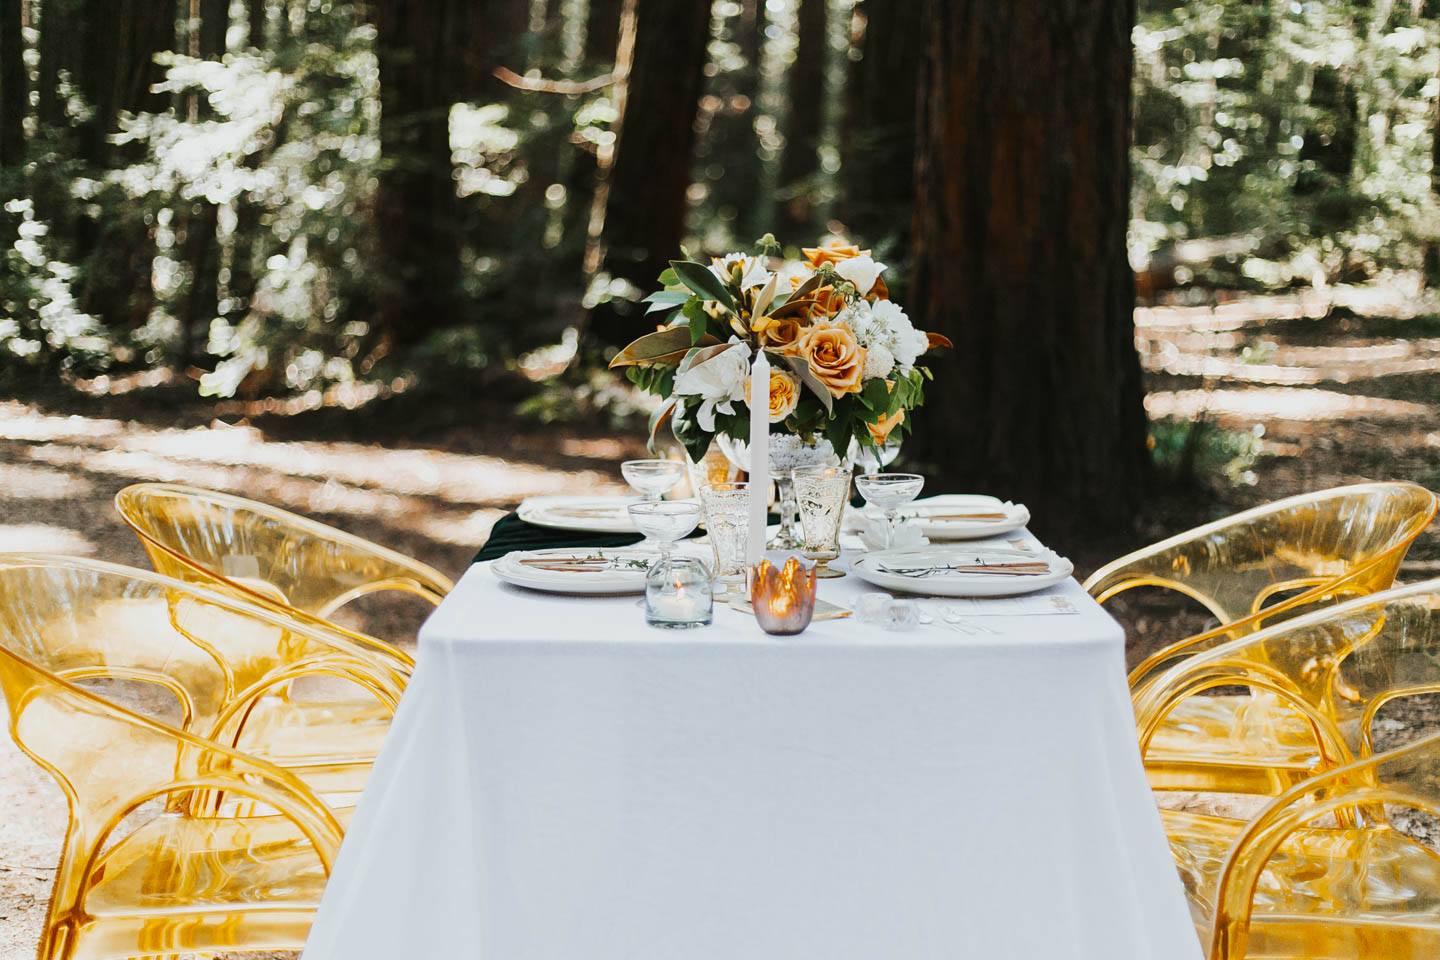 RedWoods_Styled_May2-35-2.jpg